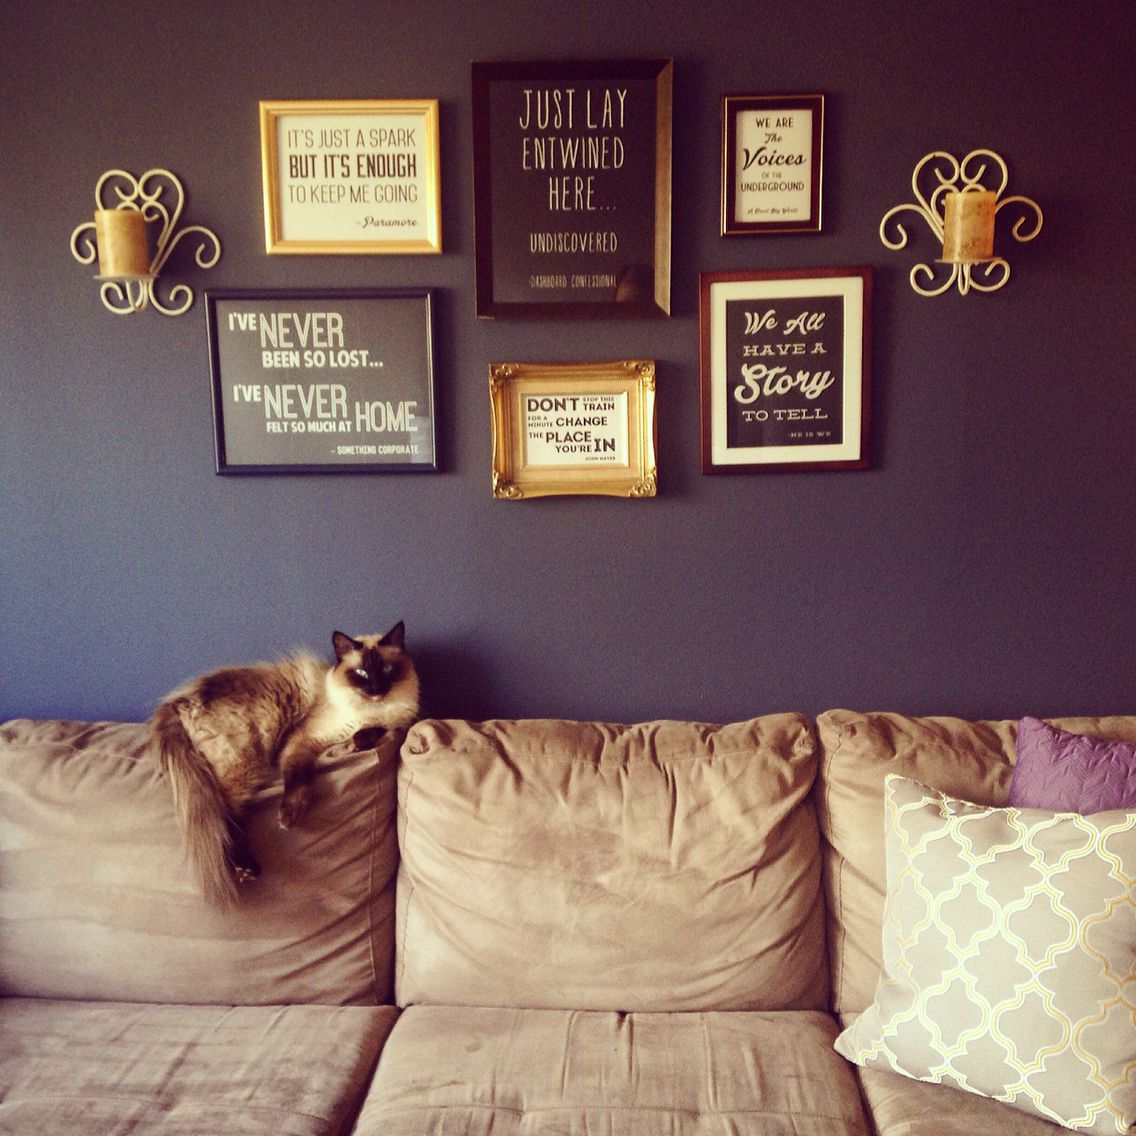 Song Lyric Wall Collage!   I had a friend who was crafty with photoshop whip up some prints of my favorite song lyrics. Then I dug through my parents' basement and found some random mismatched frames (but you can also buy them for SUPER cheap at the dollar store and spray paint them) and got these sconces at a garage sale! Fun, easy, CHEAP diy project that is one of a kind!